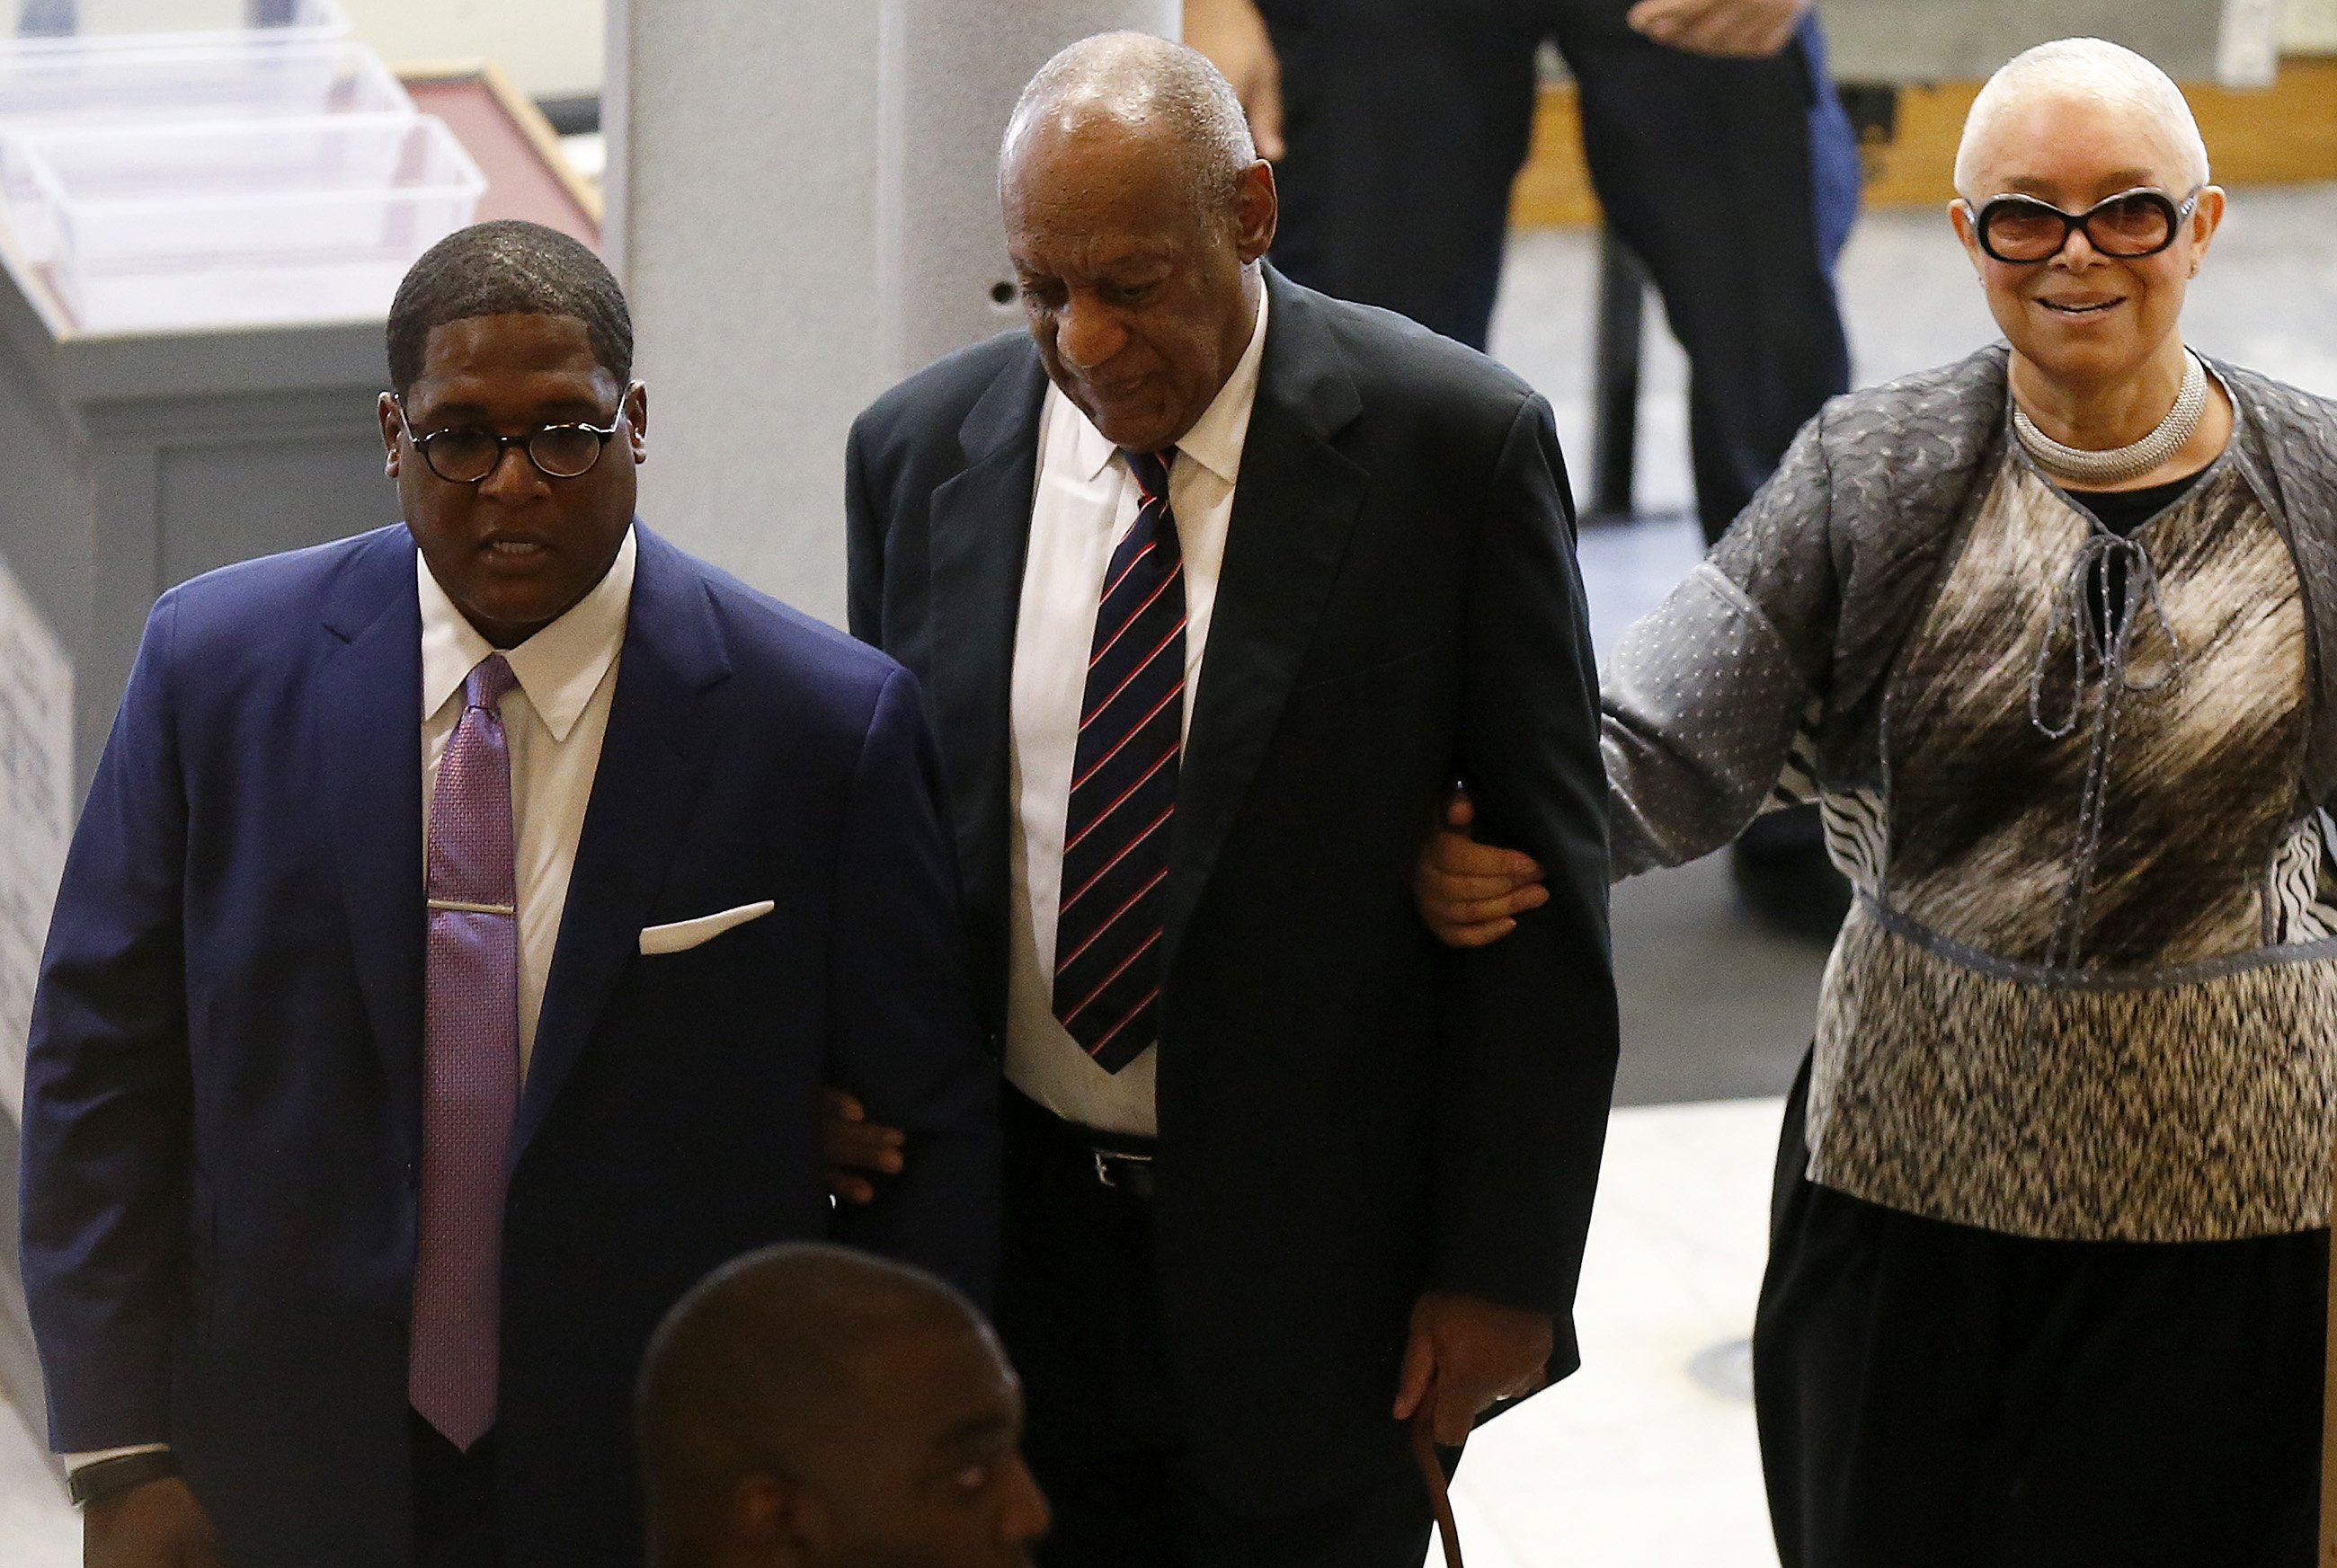 Bill and Camille Cosby and aide Andrew Wyatt enter the Montgomery County Courthouse on June 12, 2017 in in Norristown, Pennsylvania. | Photo: GettyImages